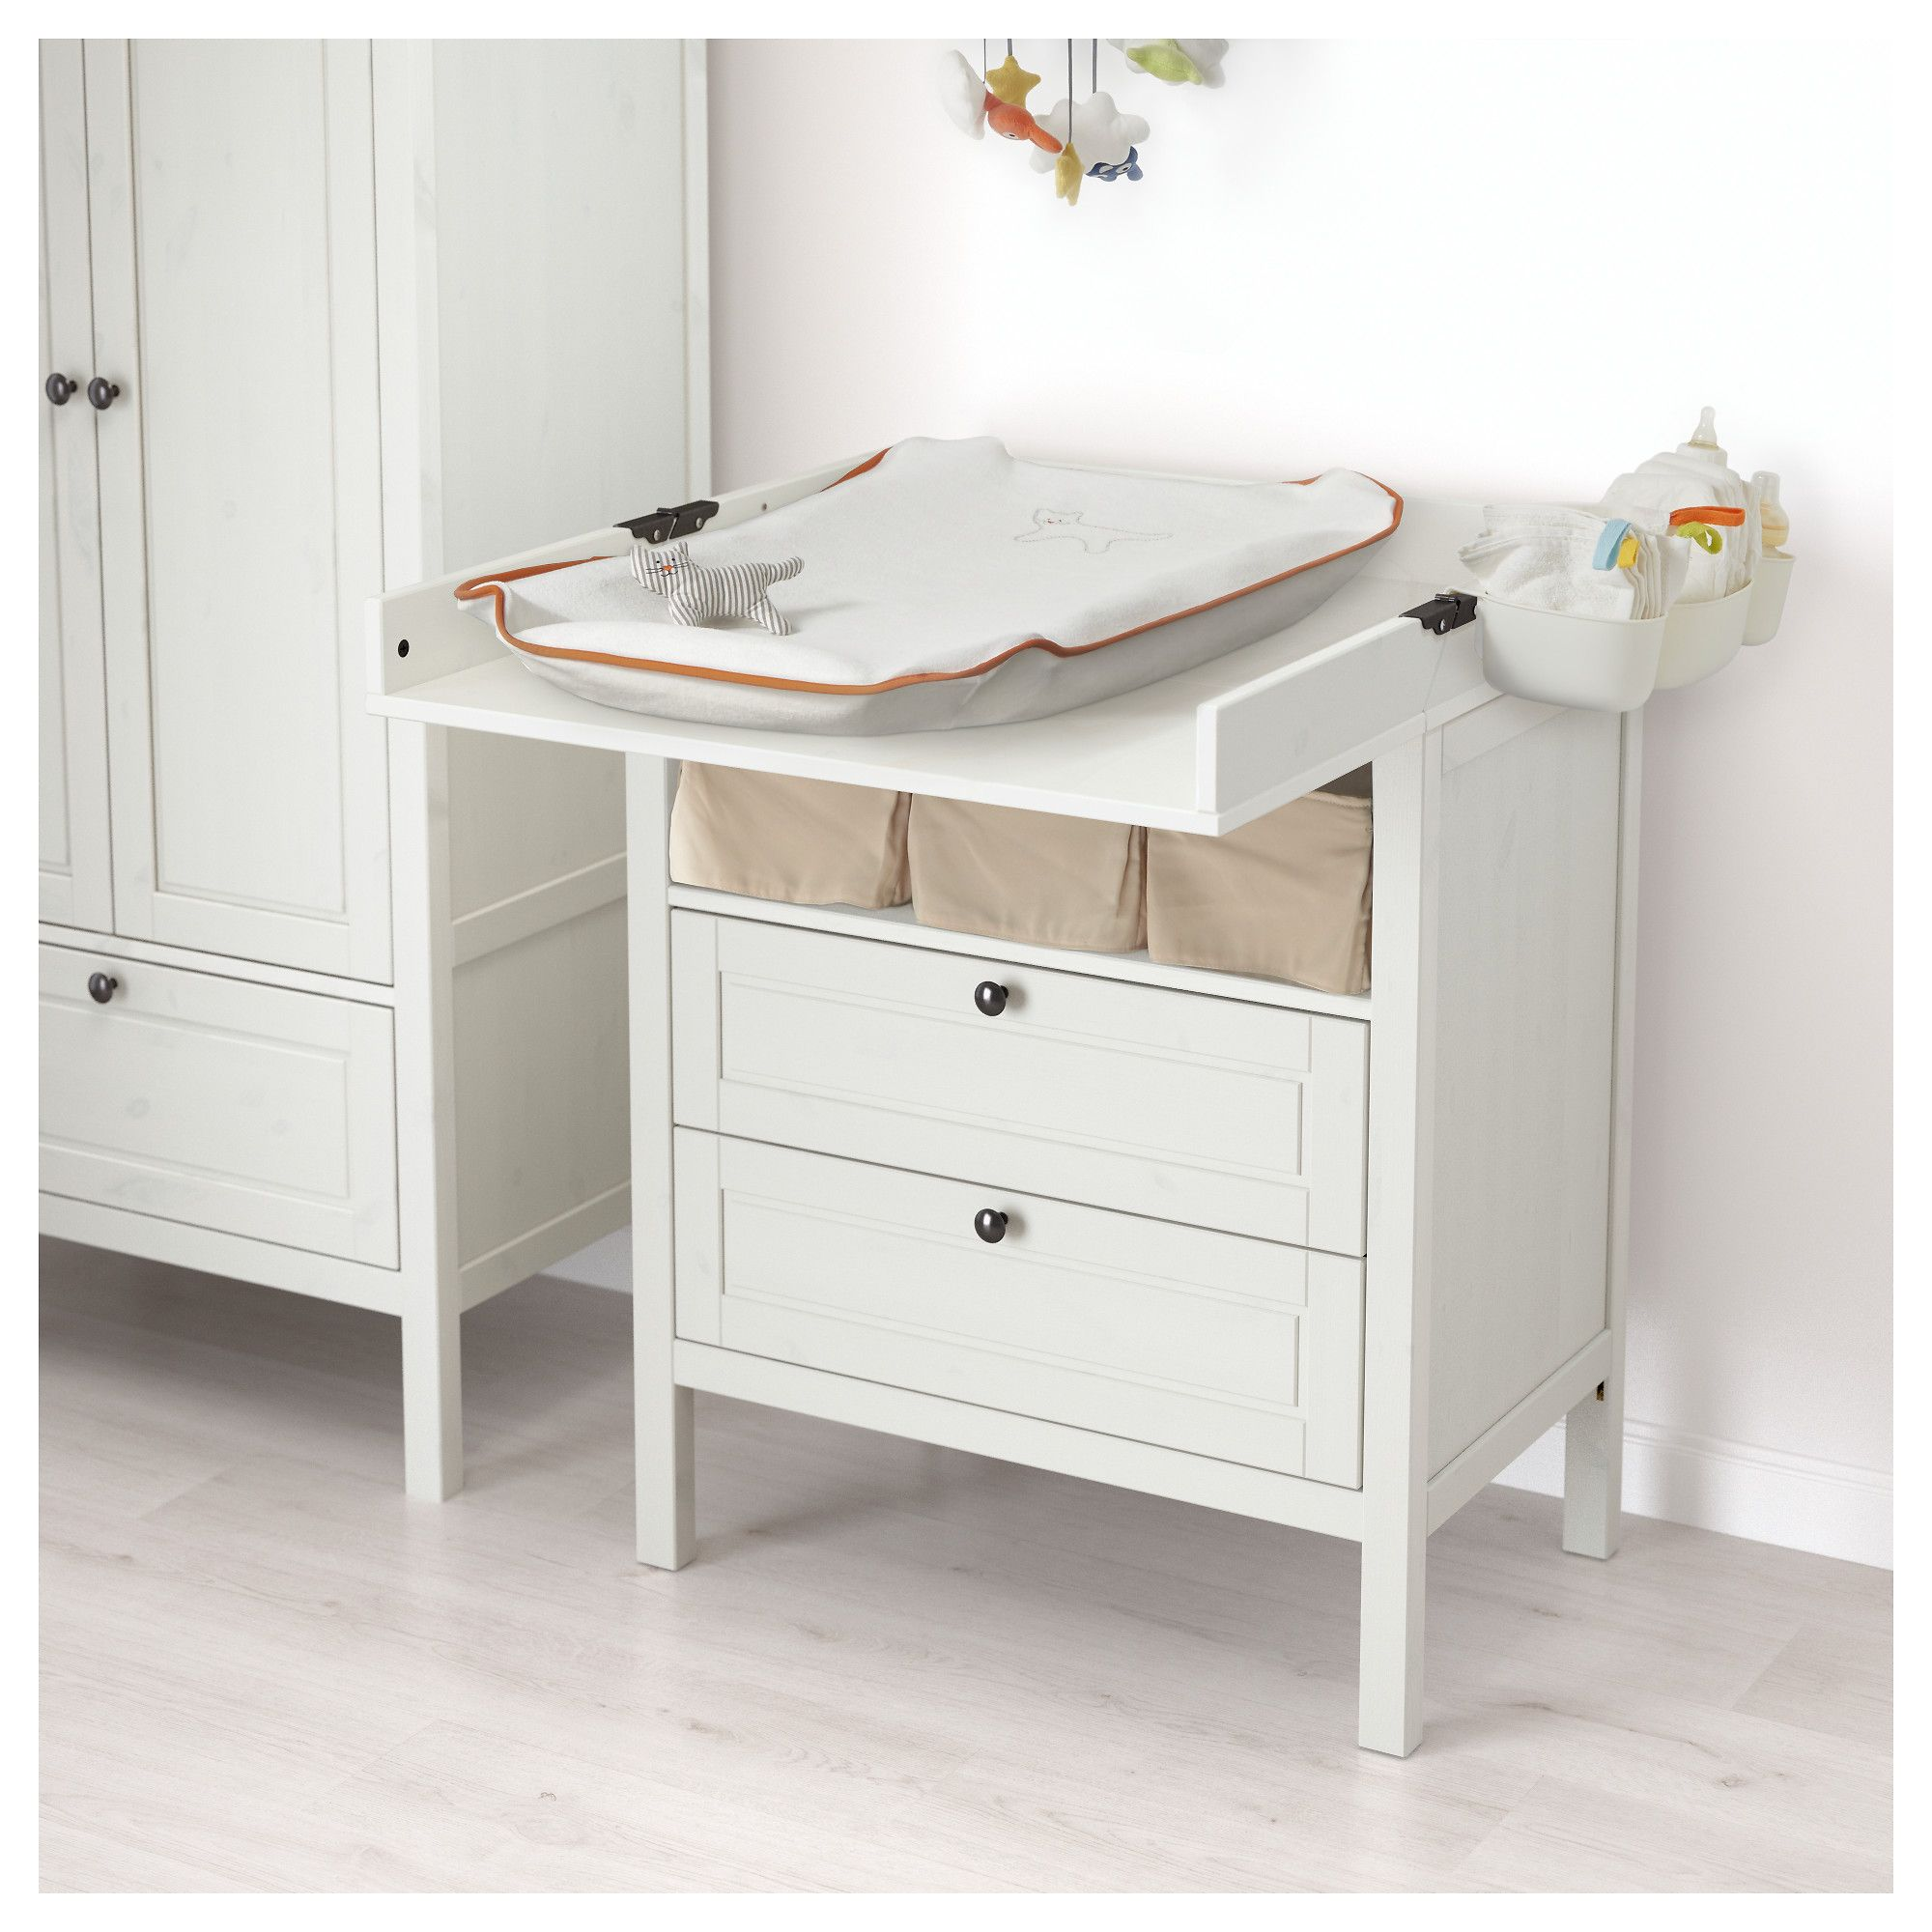 Sundvik Wickeltisch Ikea Sundvik Changing Table Chest Of Drawers Comfortable Height